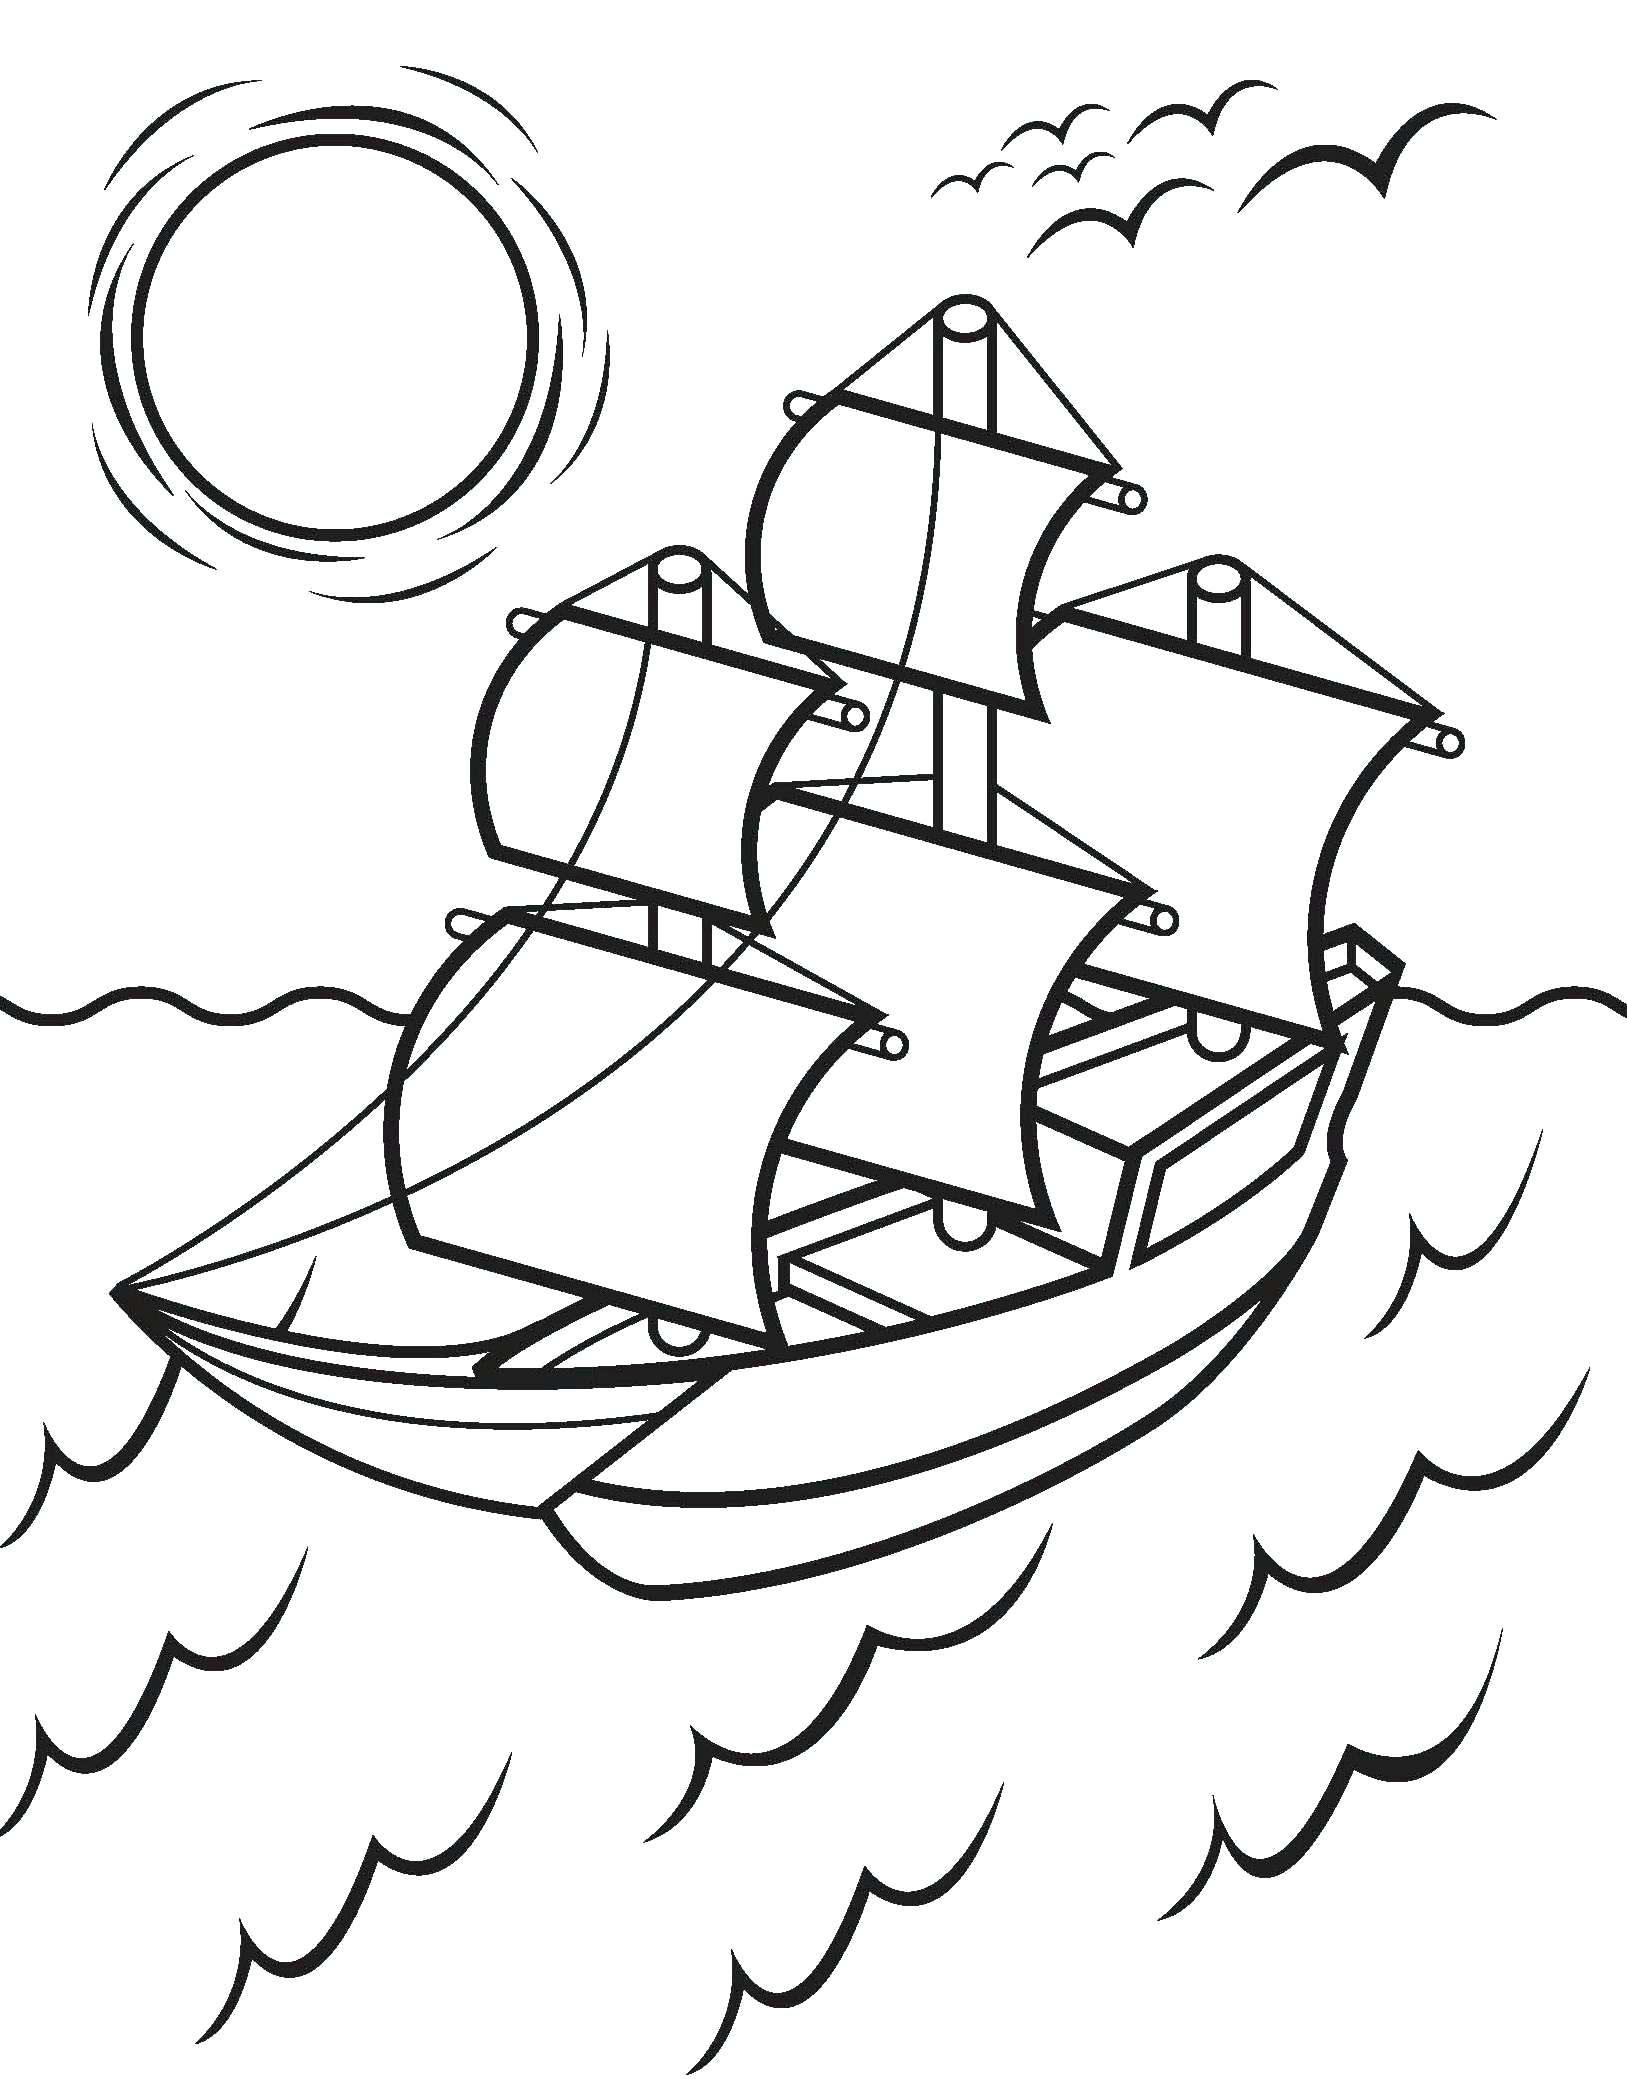 Mayflower Coloring Page 7 Wonderful Mayflower Drawing For Kids Gallery Kids Drawing